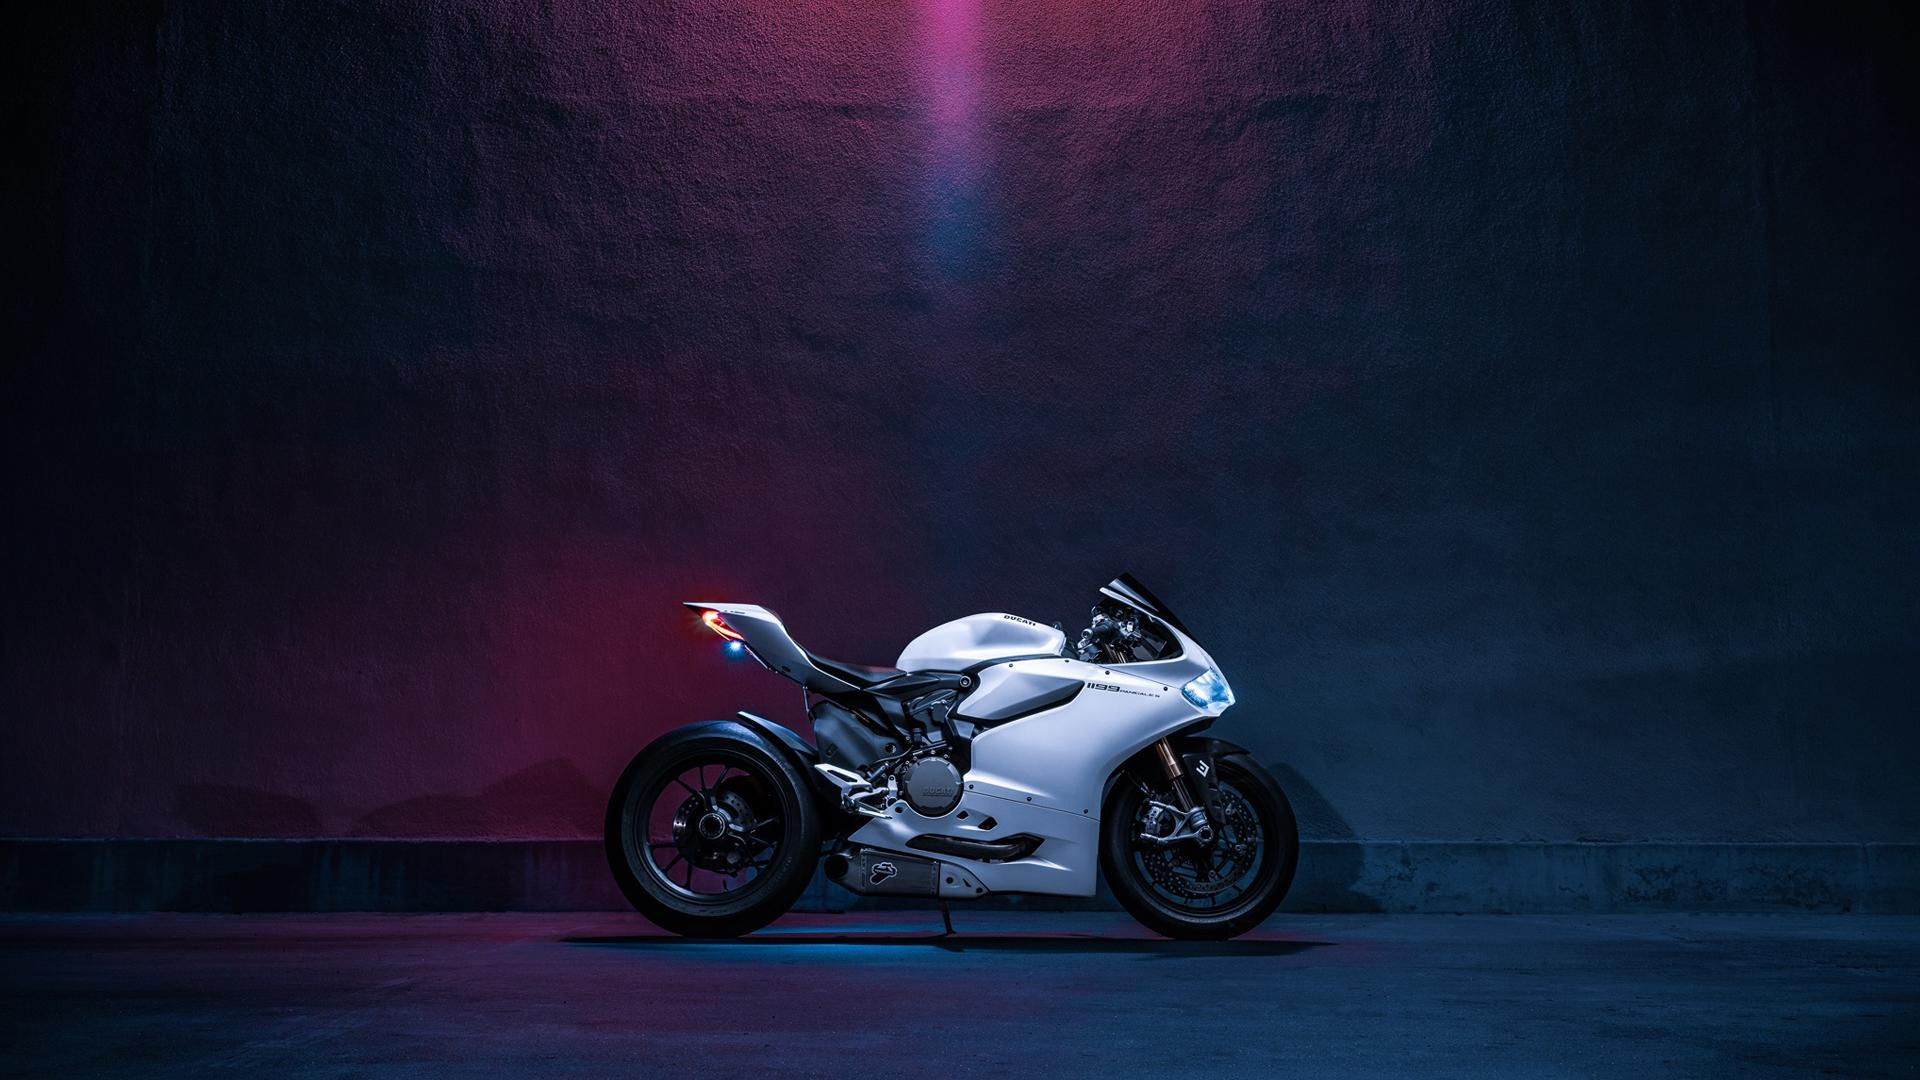 ducati-moto-wallpapers-64979-2572854.jpg